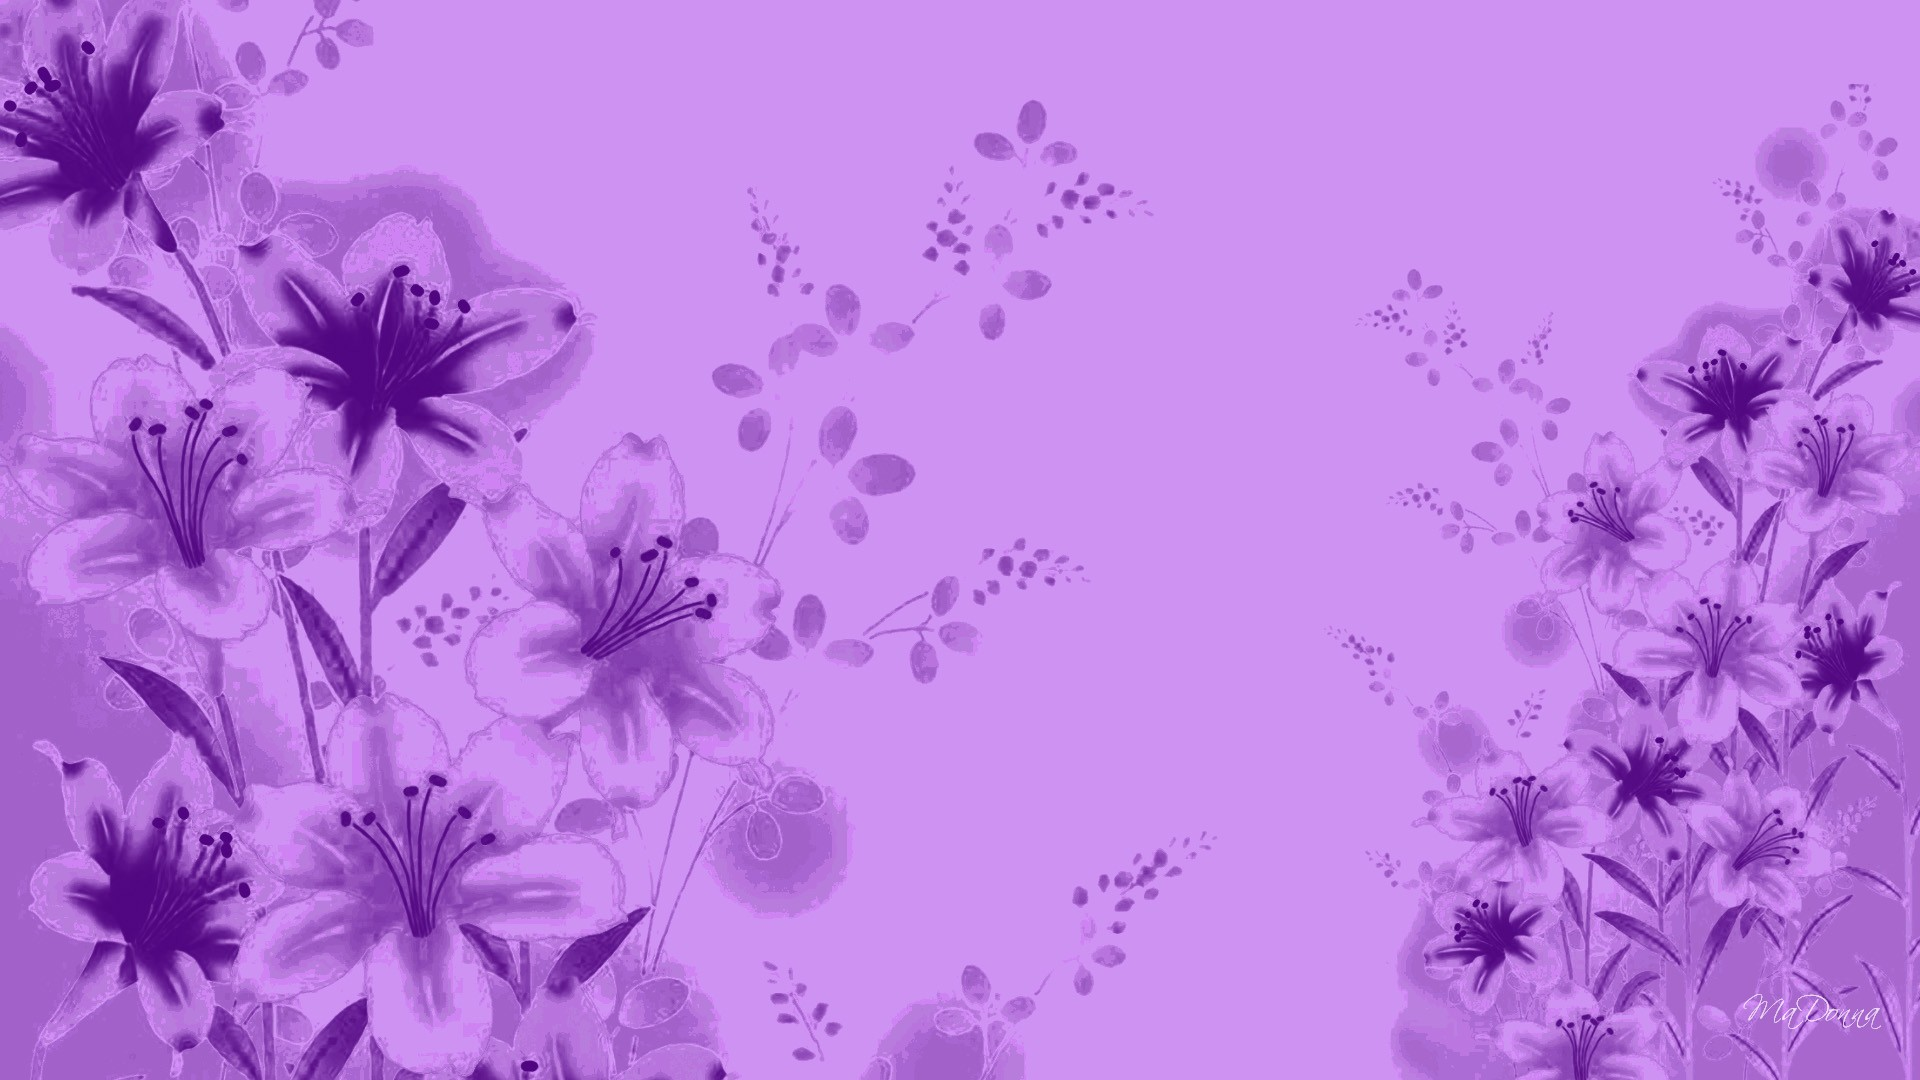 Lavender Colour Wallpaper   Wallpaper High Definition High Quality 1920x1080